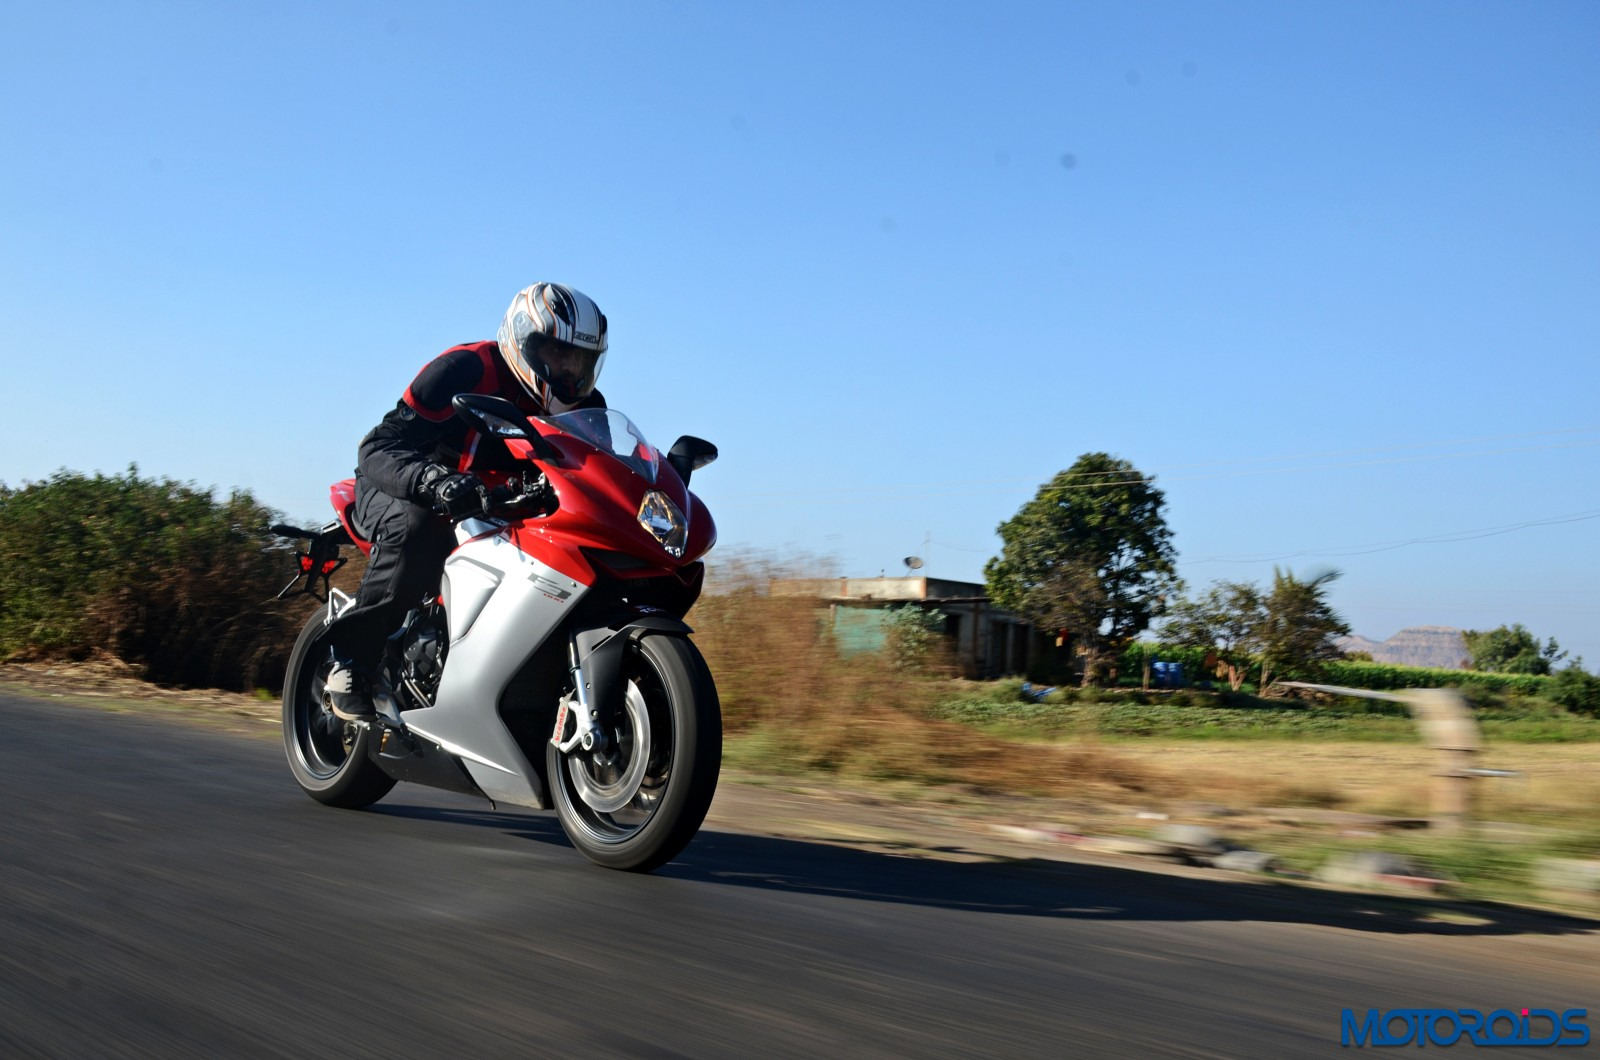 MV-Agusta-Review-Action-Shots-New-10